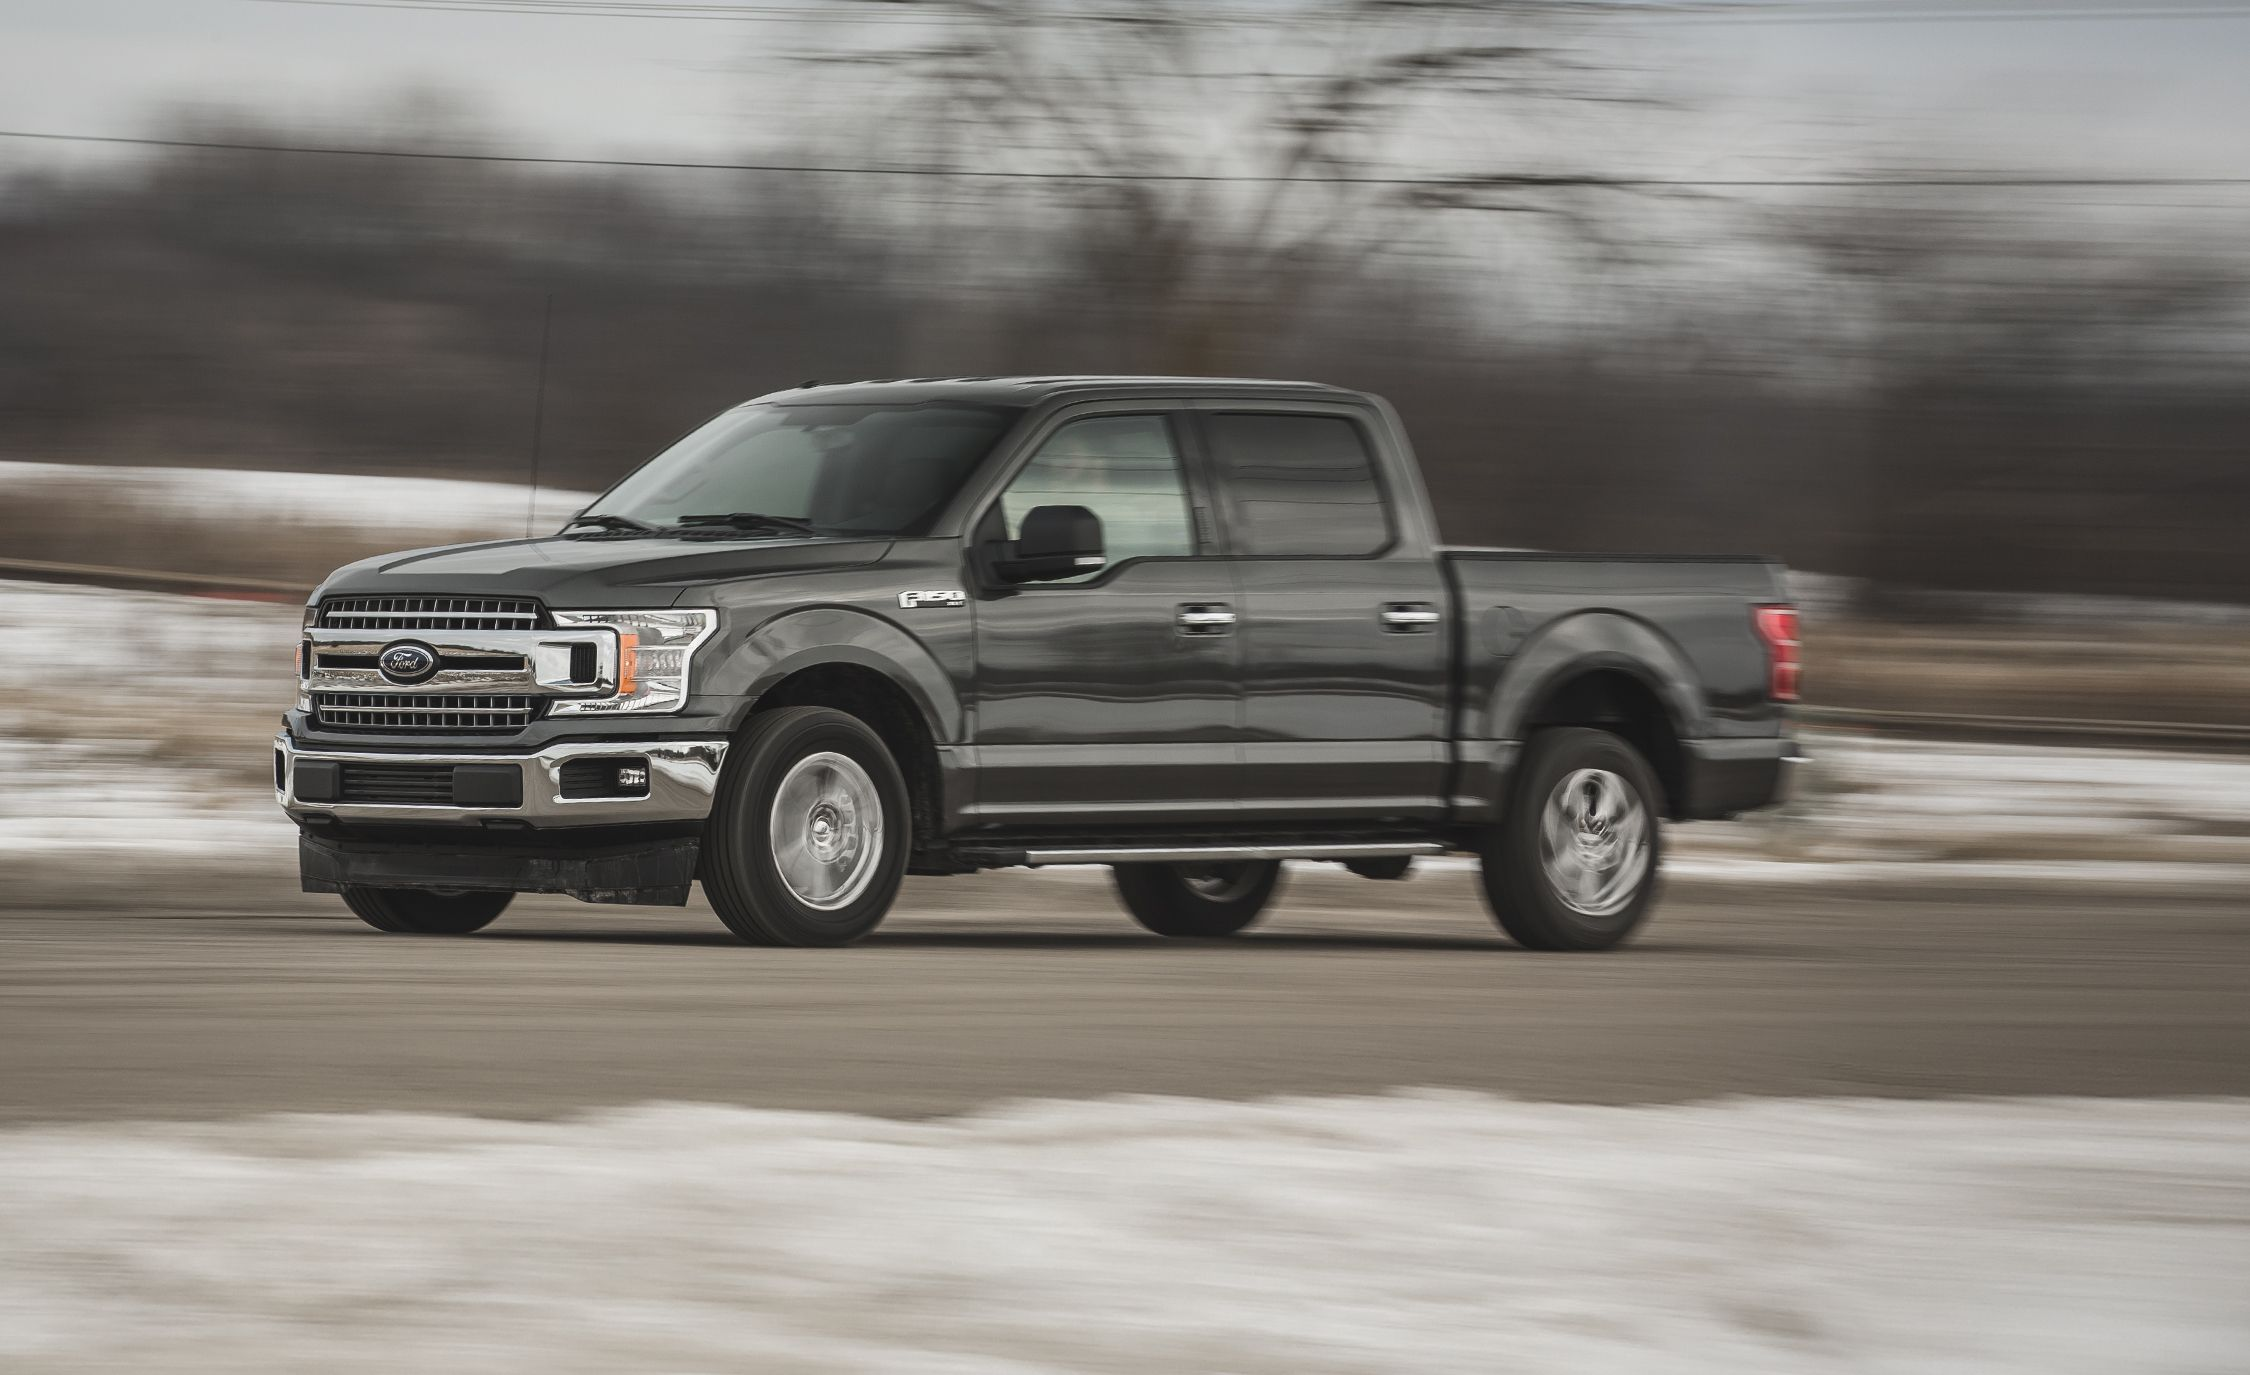 2018 Ford F-150 5.0L V-8 4x2 SuperCrew